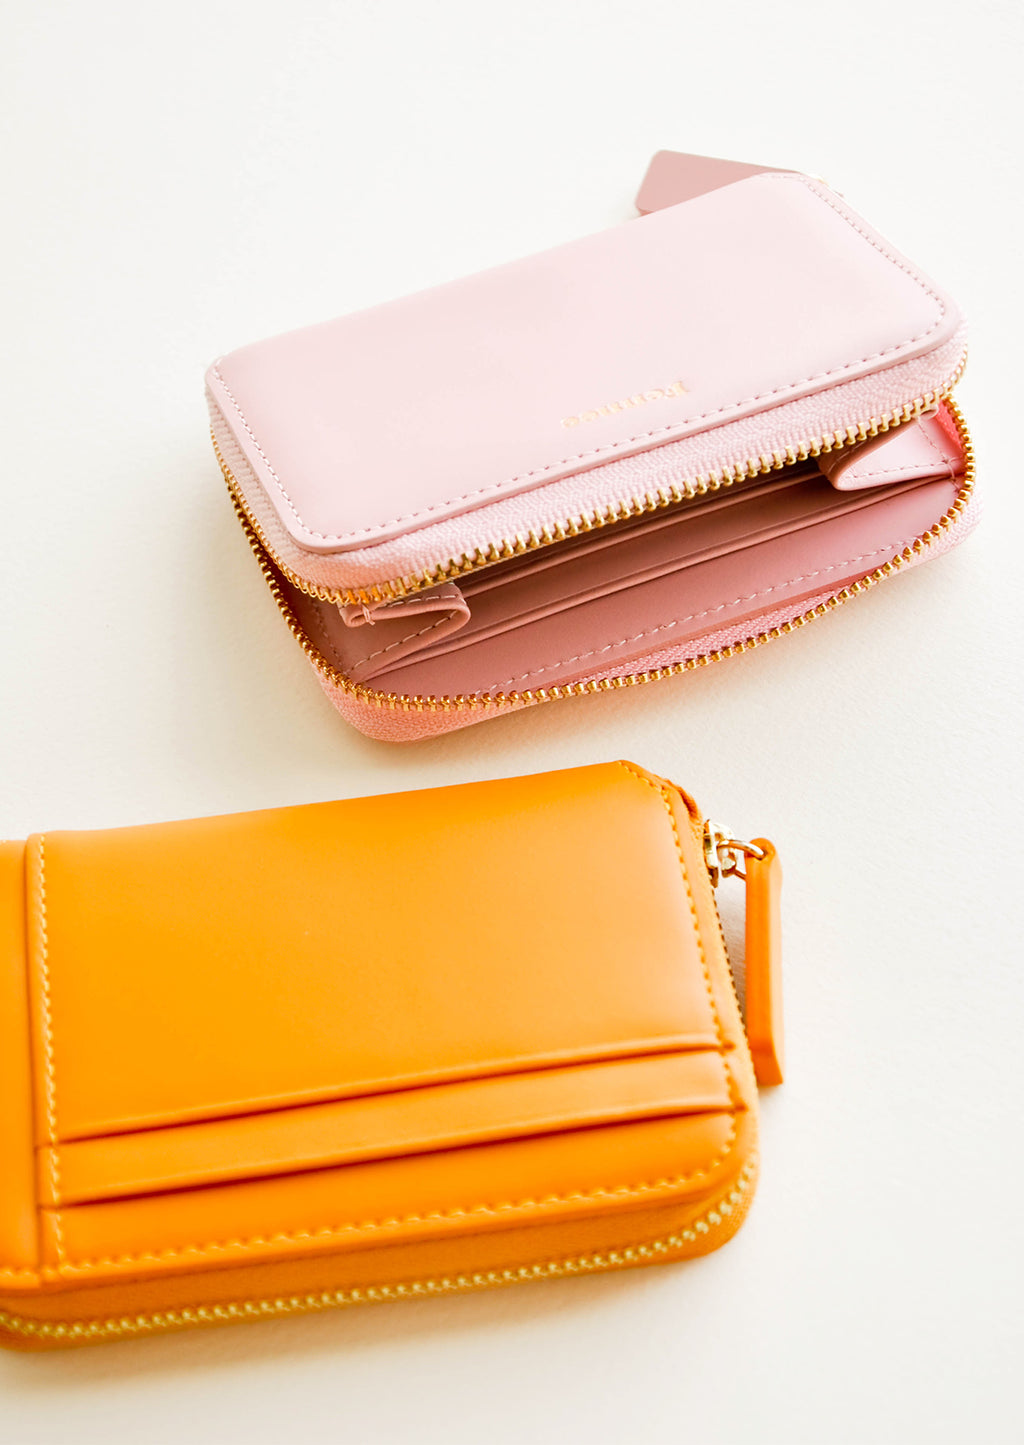 4: Pale pink leather wallet shown unzipped next to orange wallet with three exterior card slots.